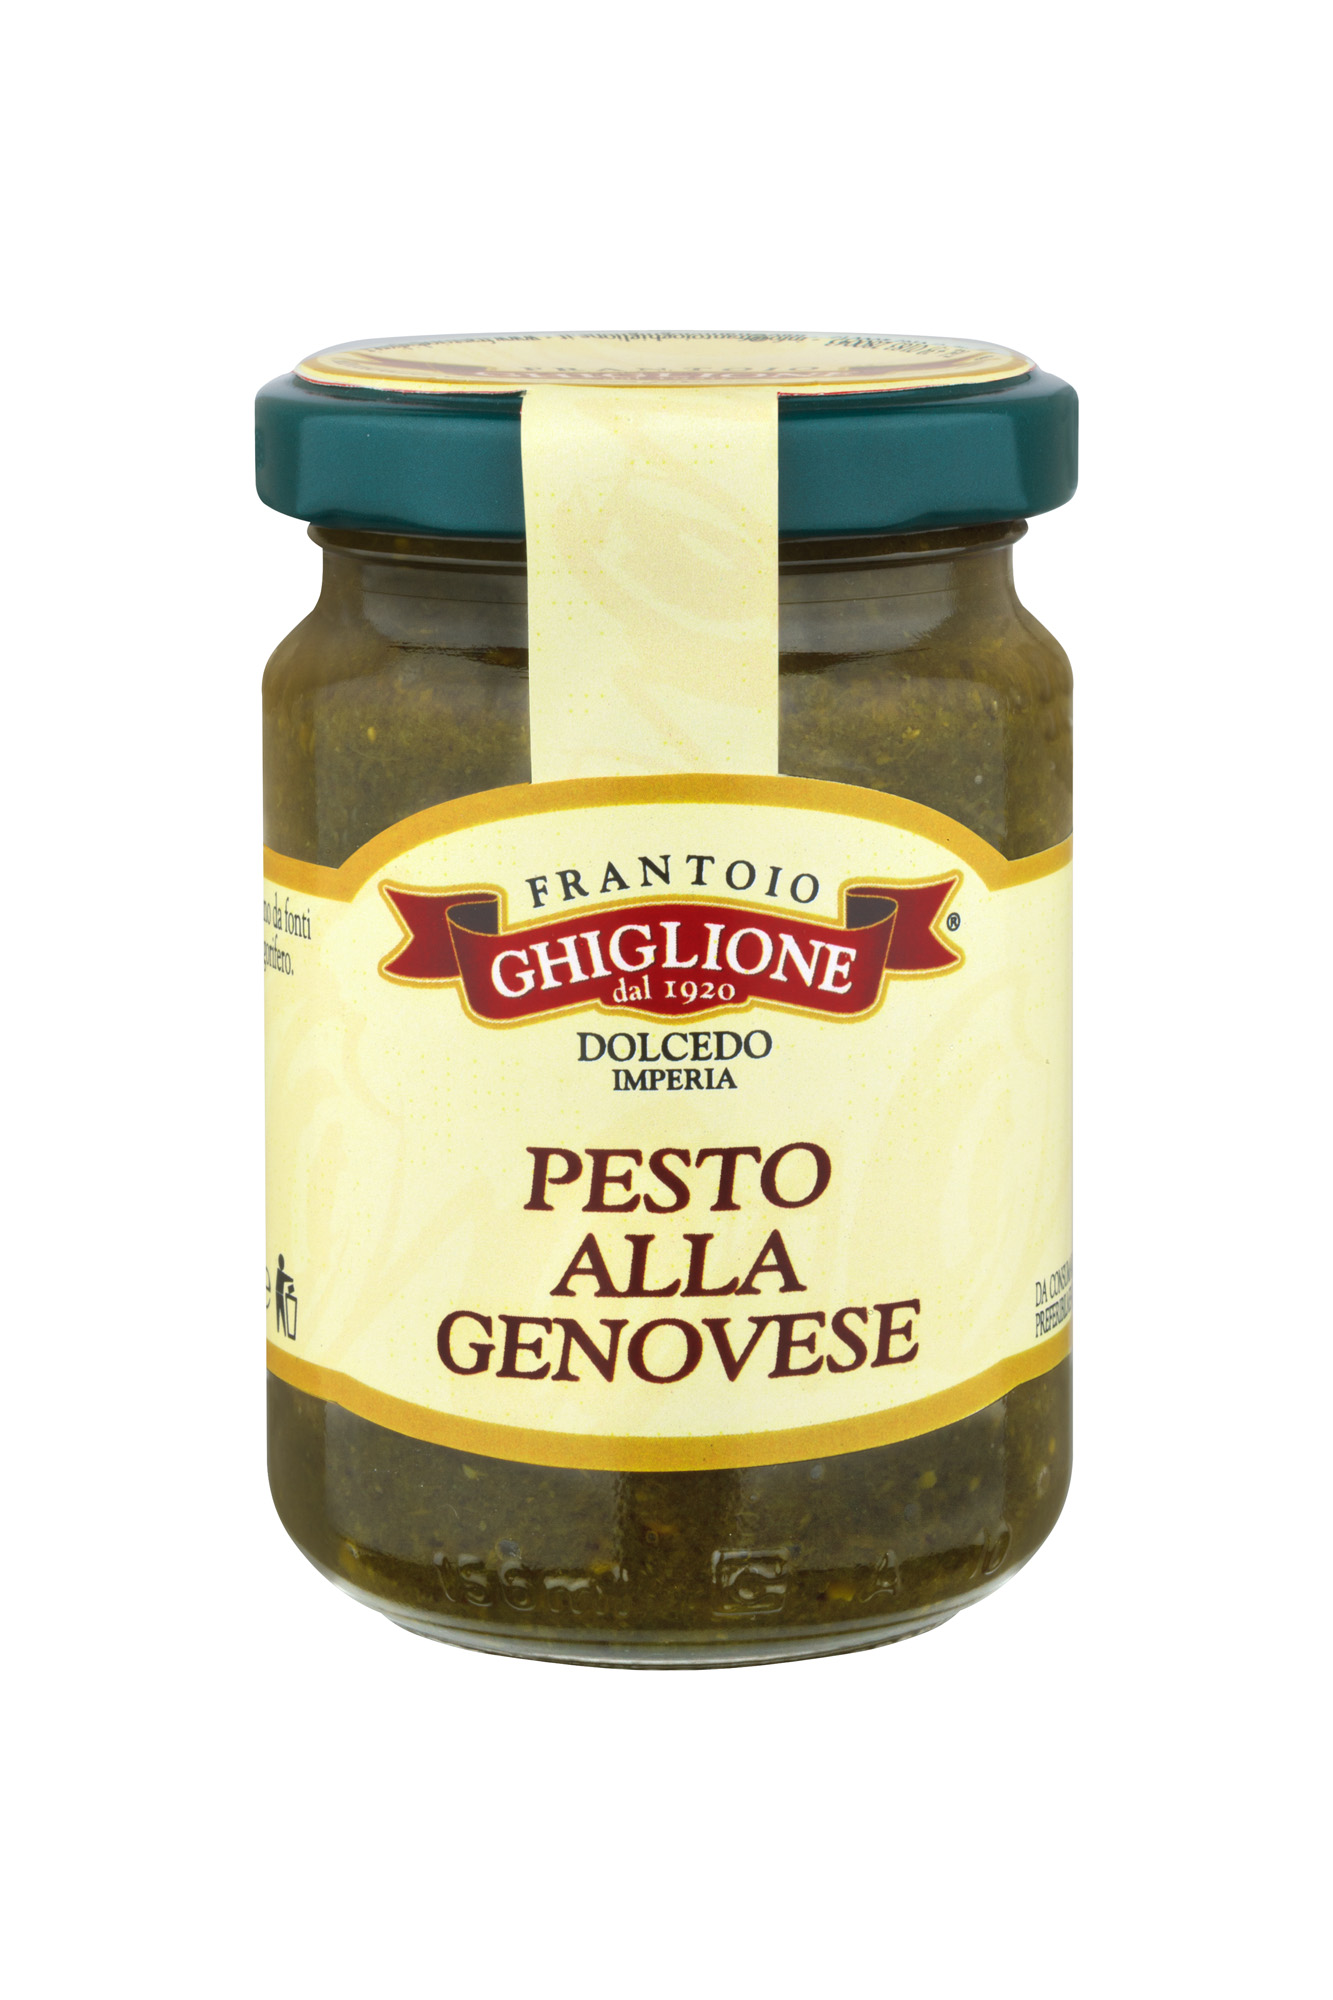 Ghiglione classic pesto genovese from Liguria 130g - UK only